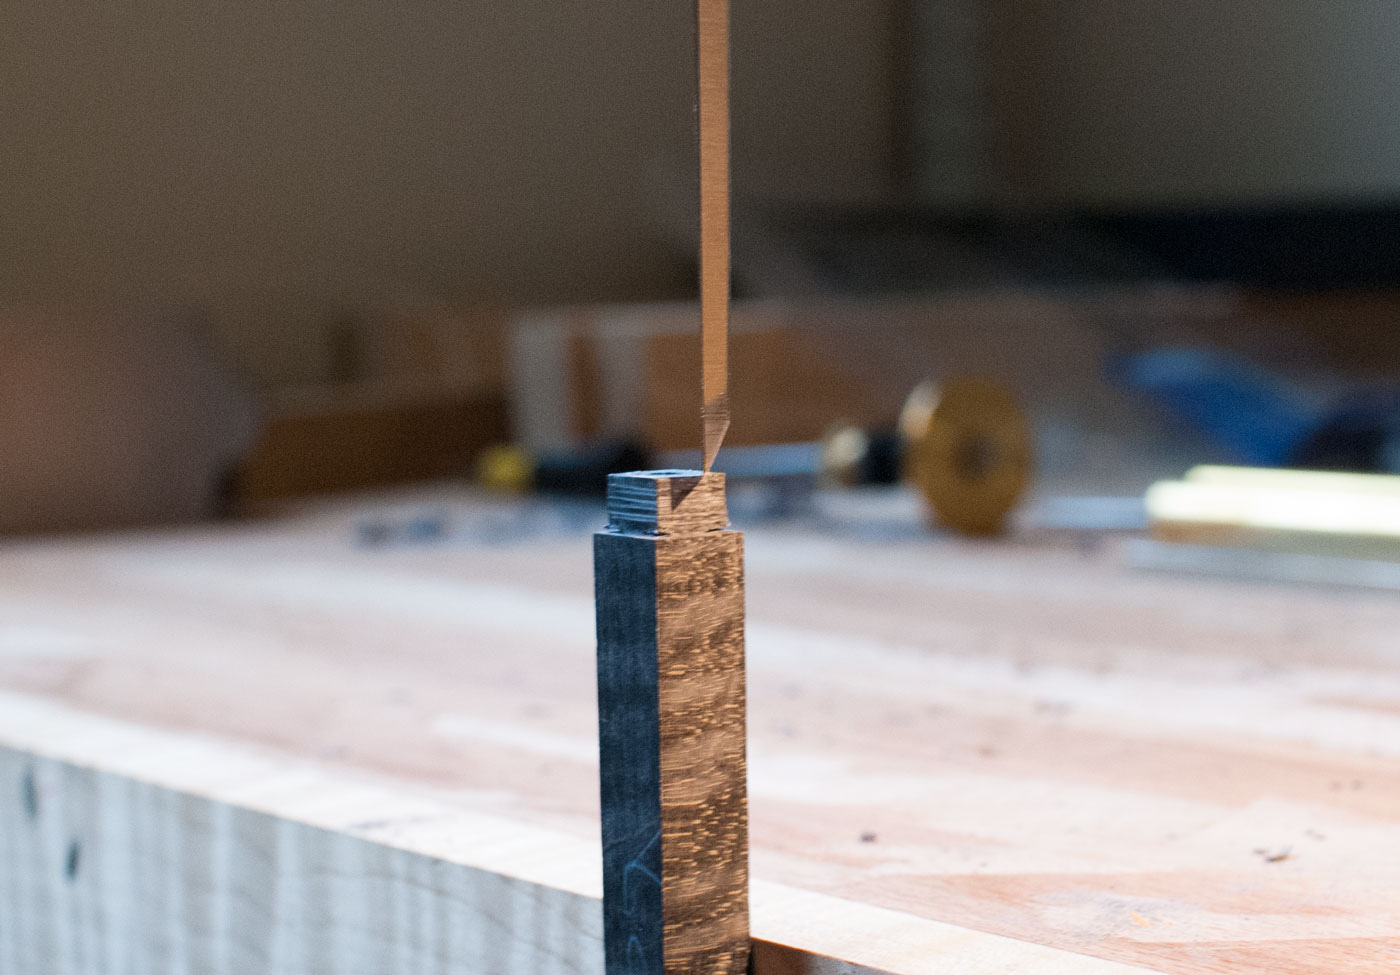 Paring down the tenon with a chisel to round it to the shape of the ferrule.